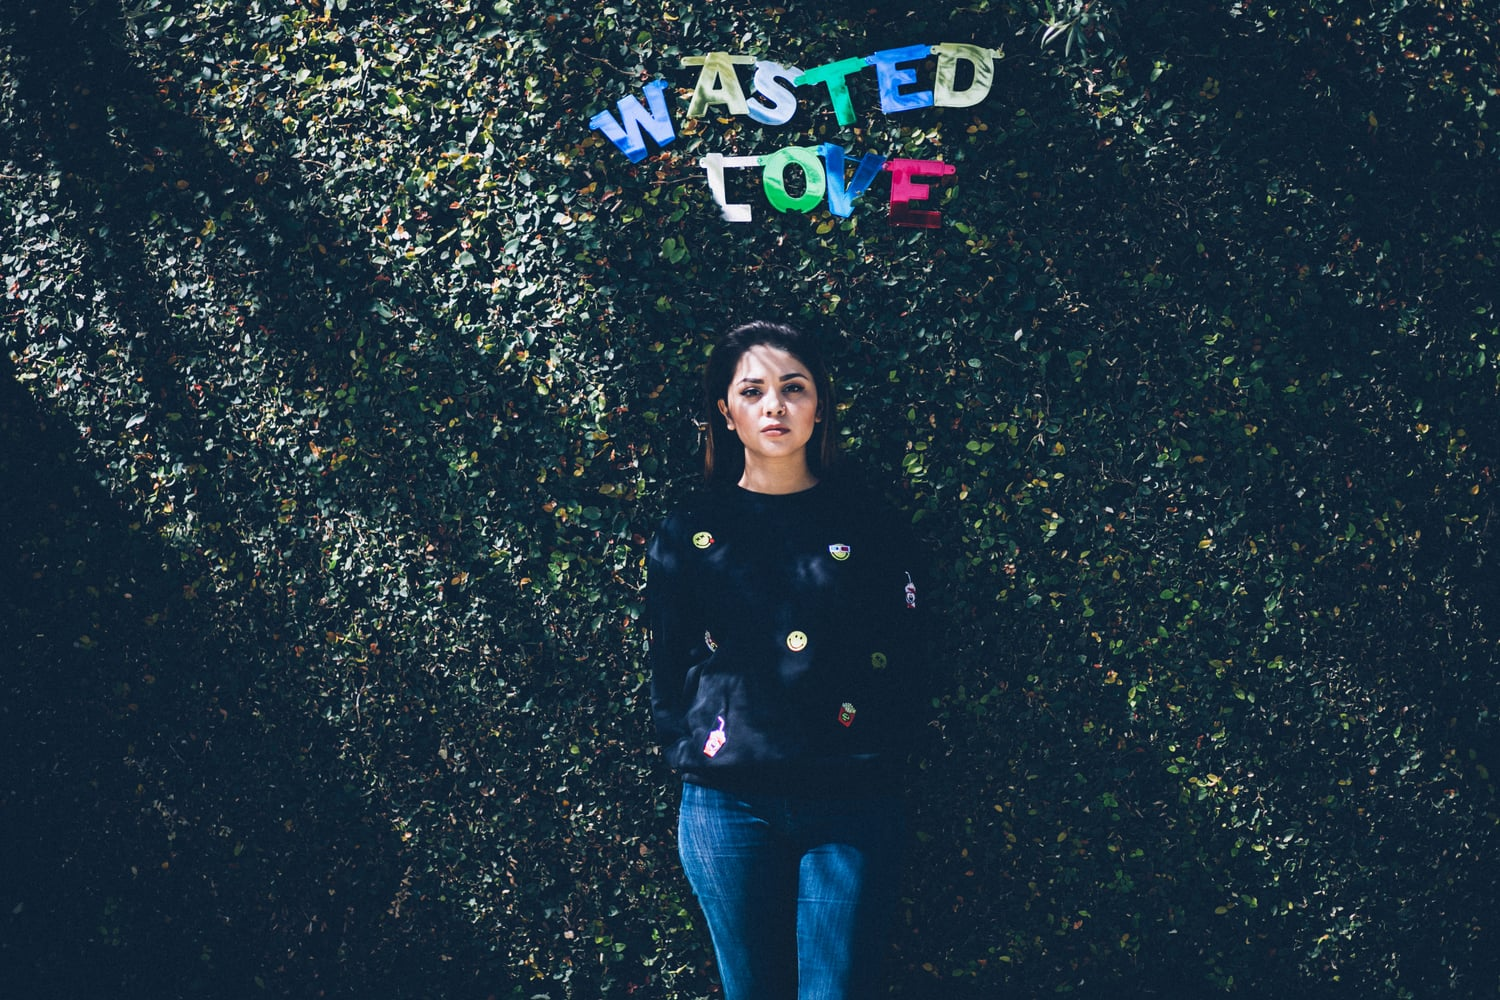 Alyssa Bernal wasted love High Quality wallpapers